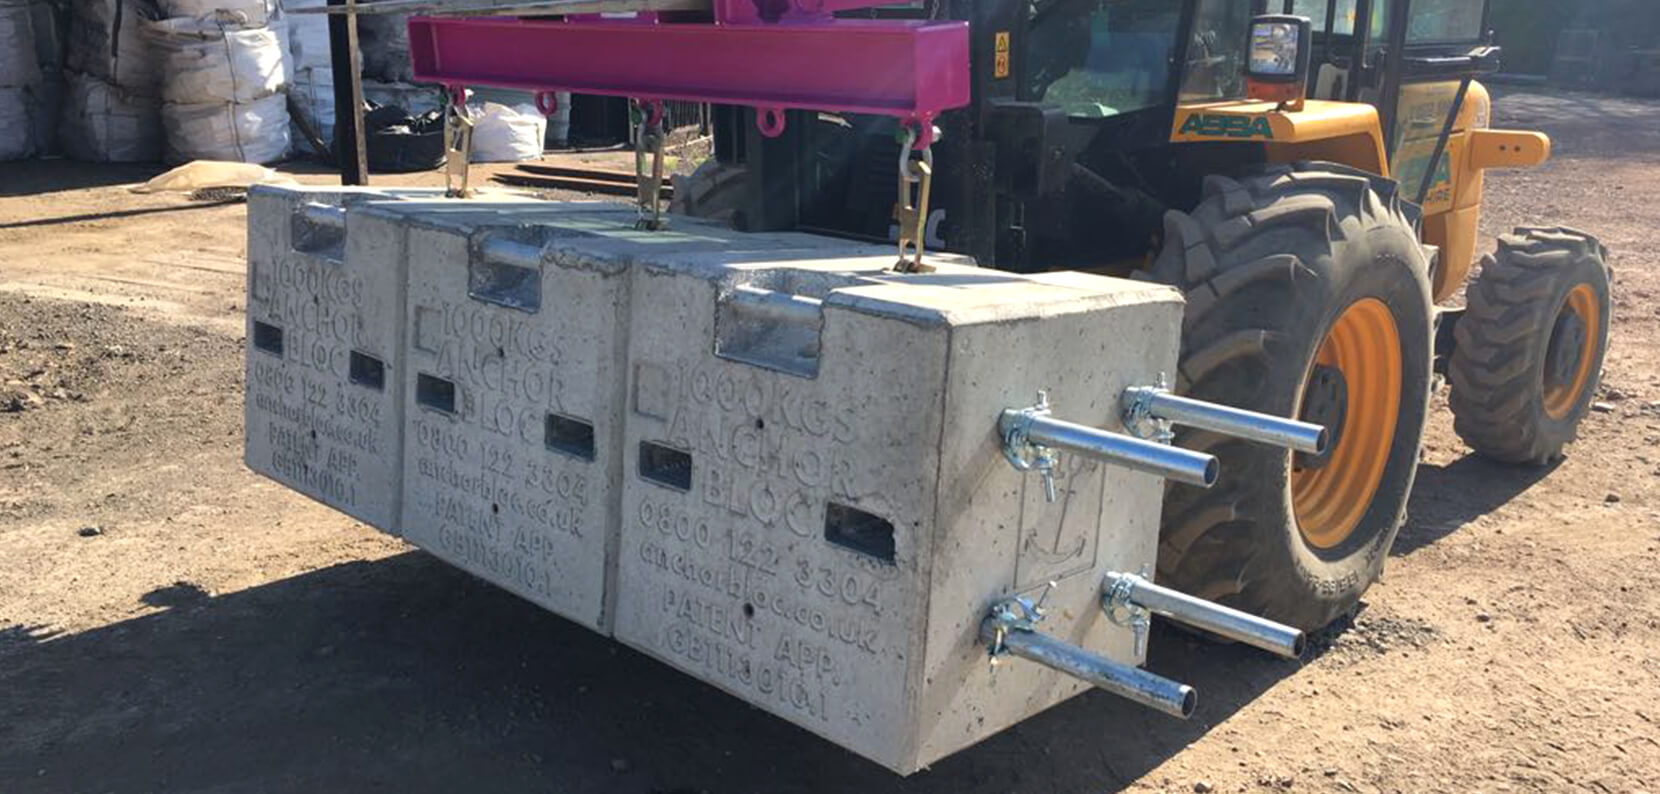 The AnchorBloc Modular system allows multiple Blocs to be bolted together securely